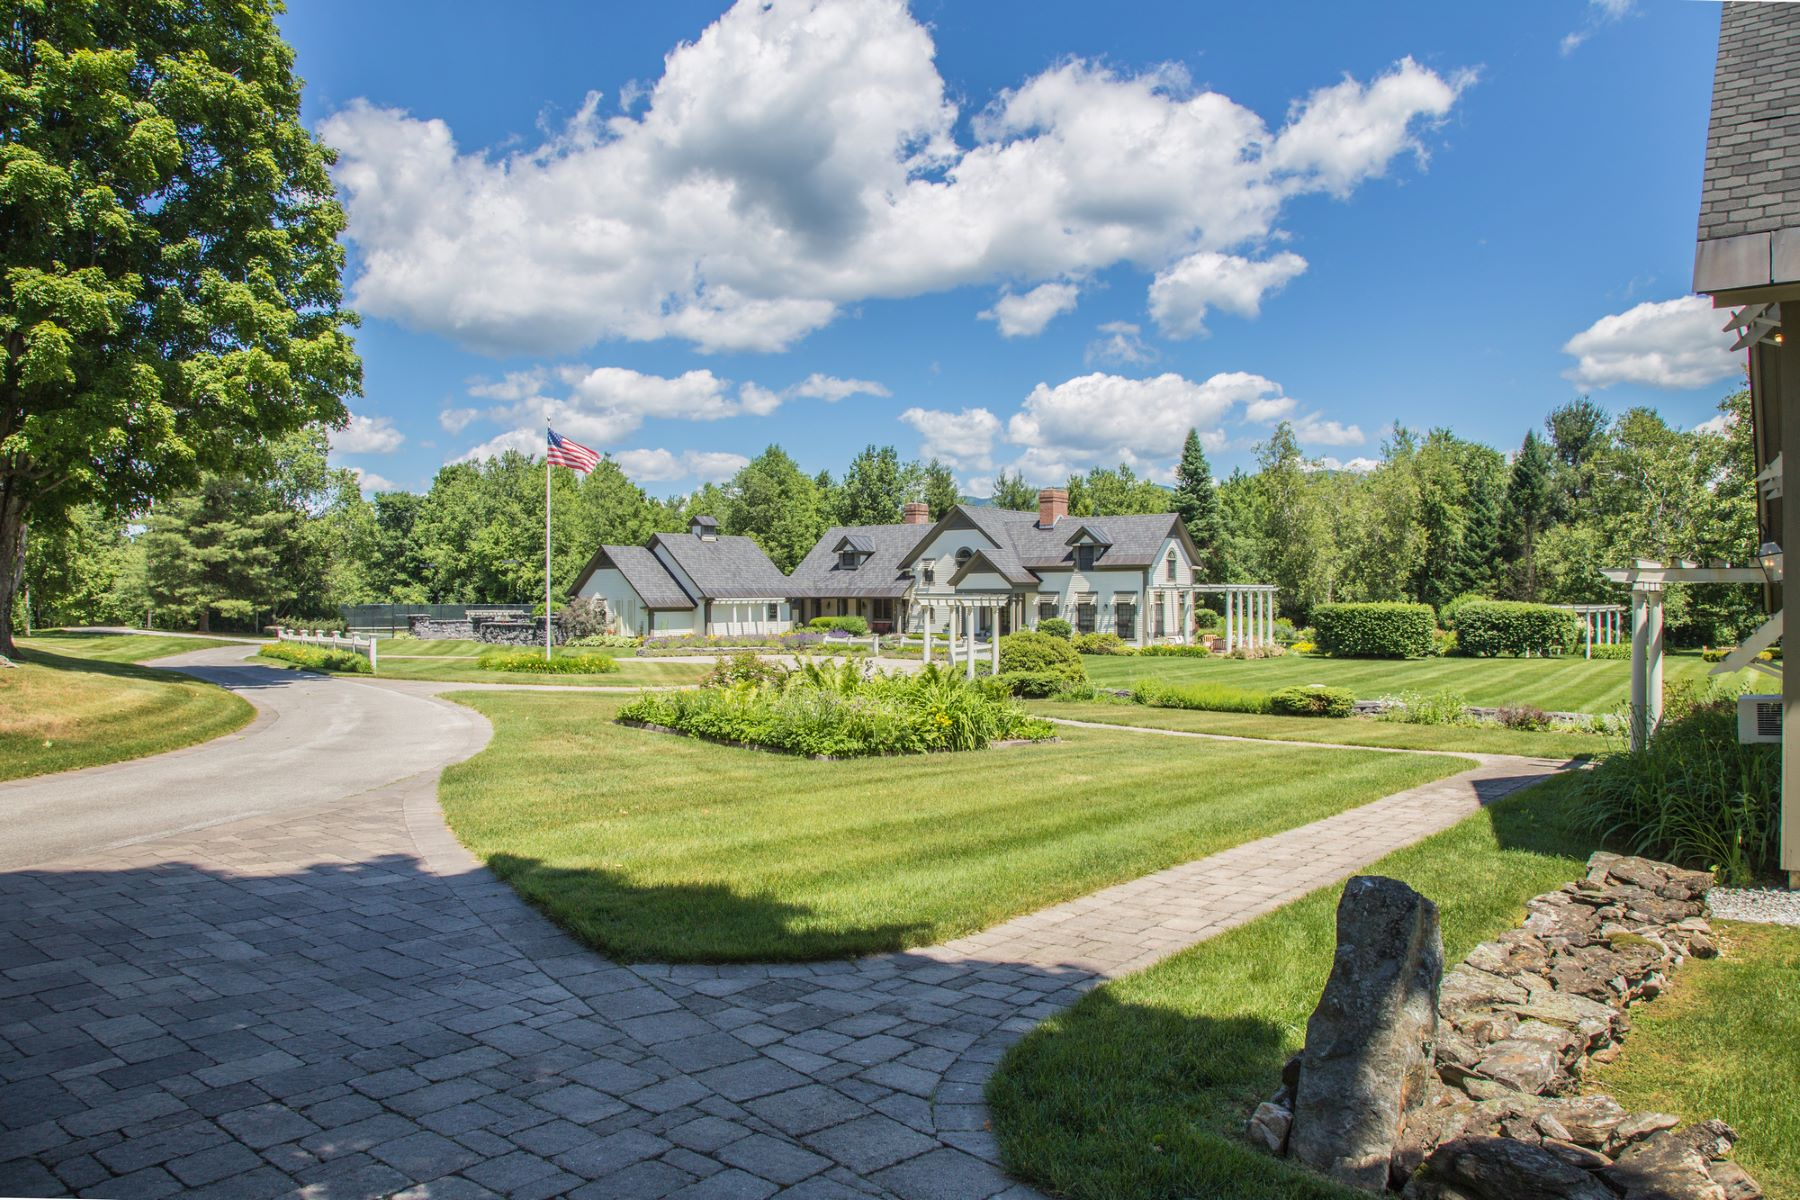 Single Family Home for Sale at Vermont Oasis-Private-Entertainment Barn - Pool 9 Abbey Ln 4 Rutland Town, Vermont 05701 United States